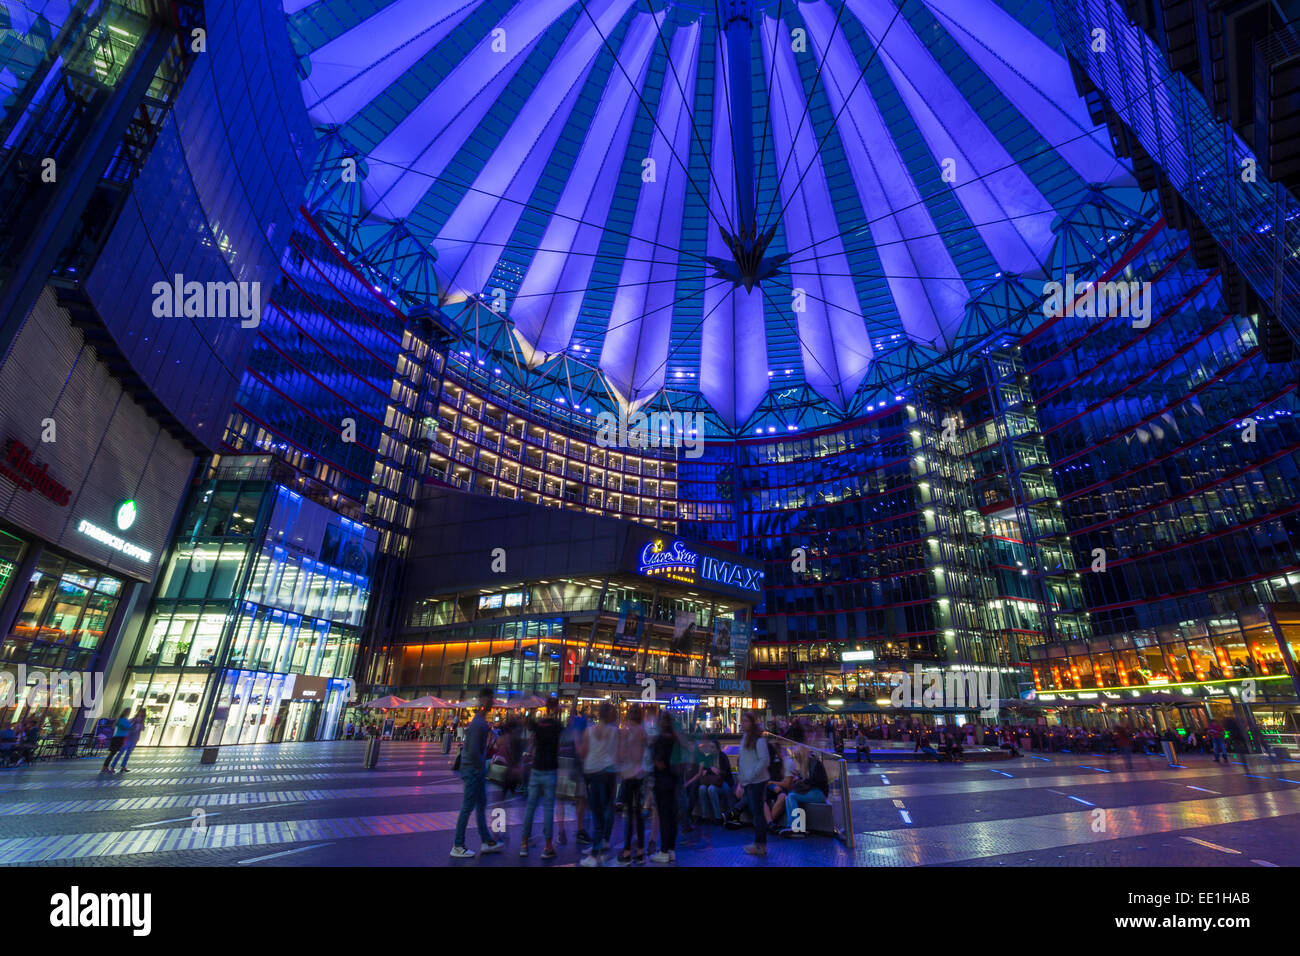 Young people relax and socialise in an illuminated Sony Center at night, Potsdamer Platz, Berlin, Germany, Europe - Stock Image